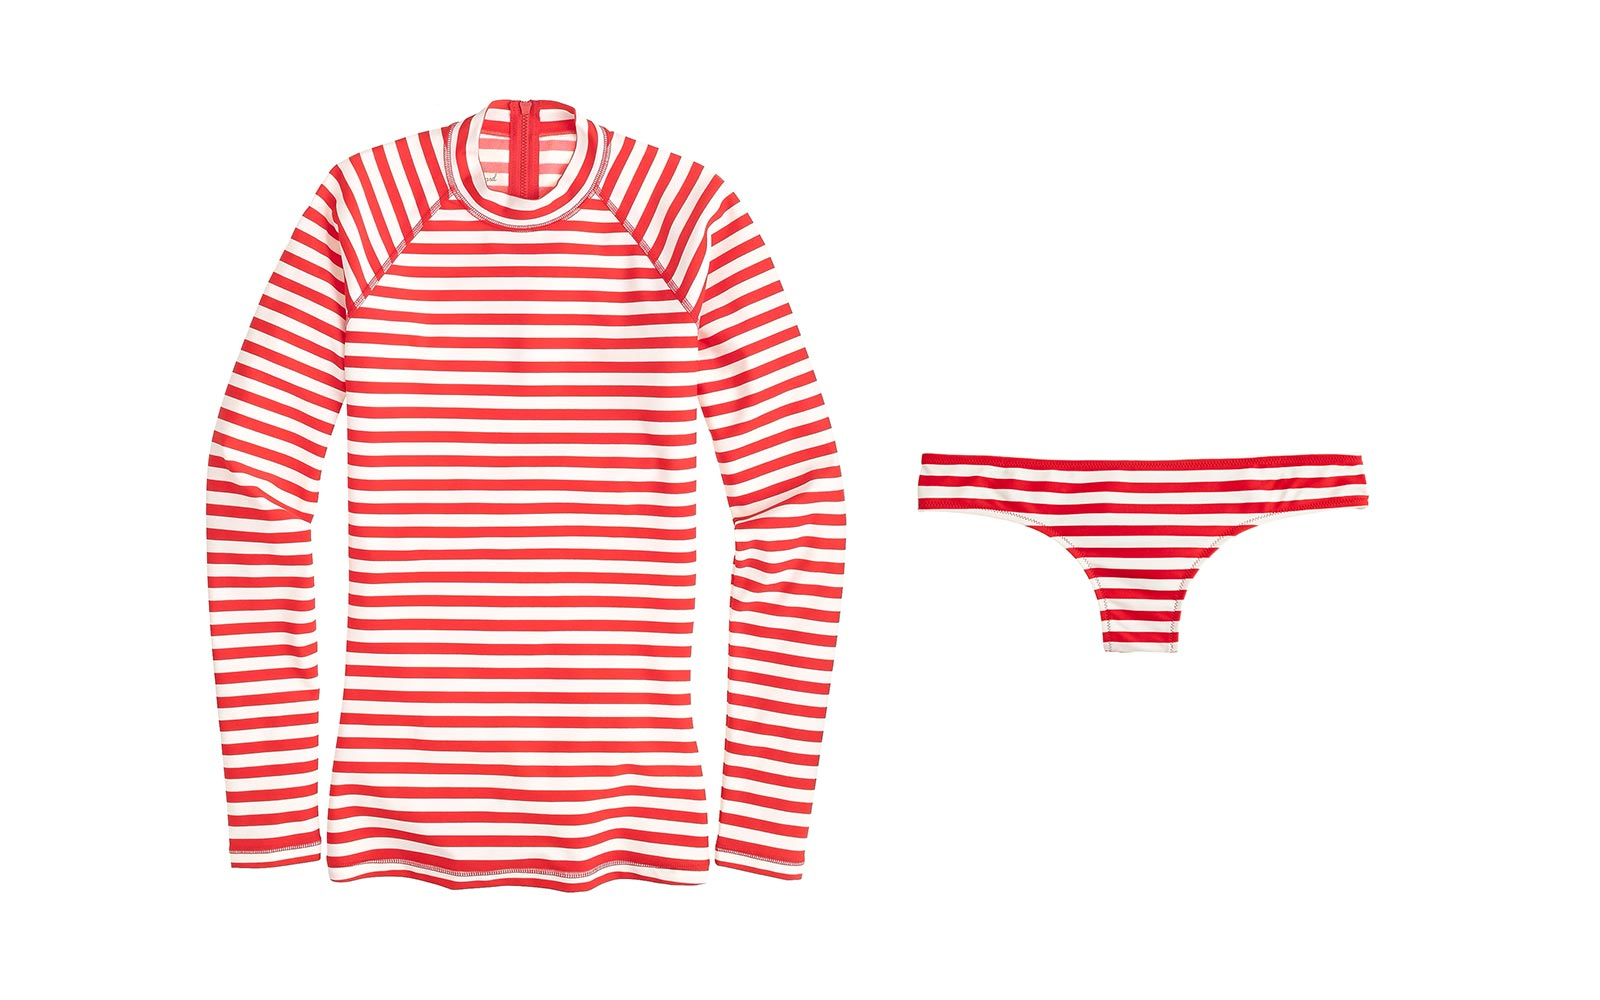 J.Crew Long-sleeve Rash Guard in Classic Stripe and Surf Hipster Bottom in Stripe